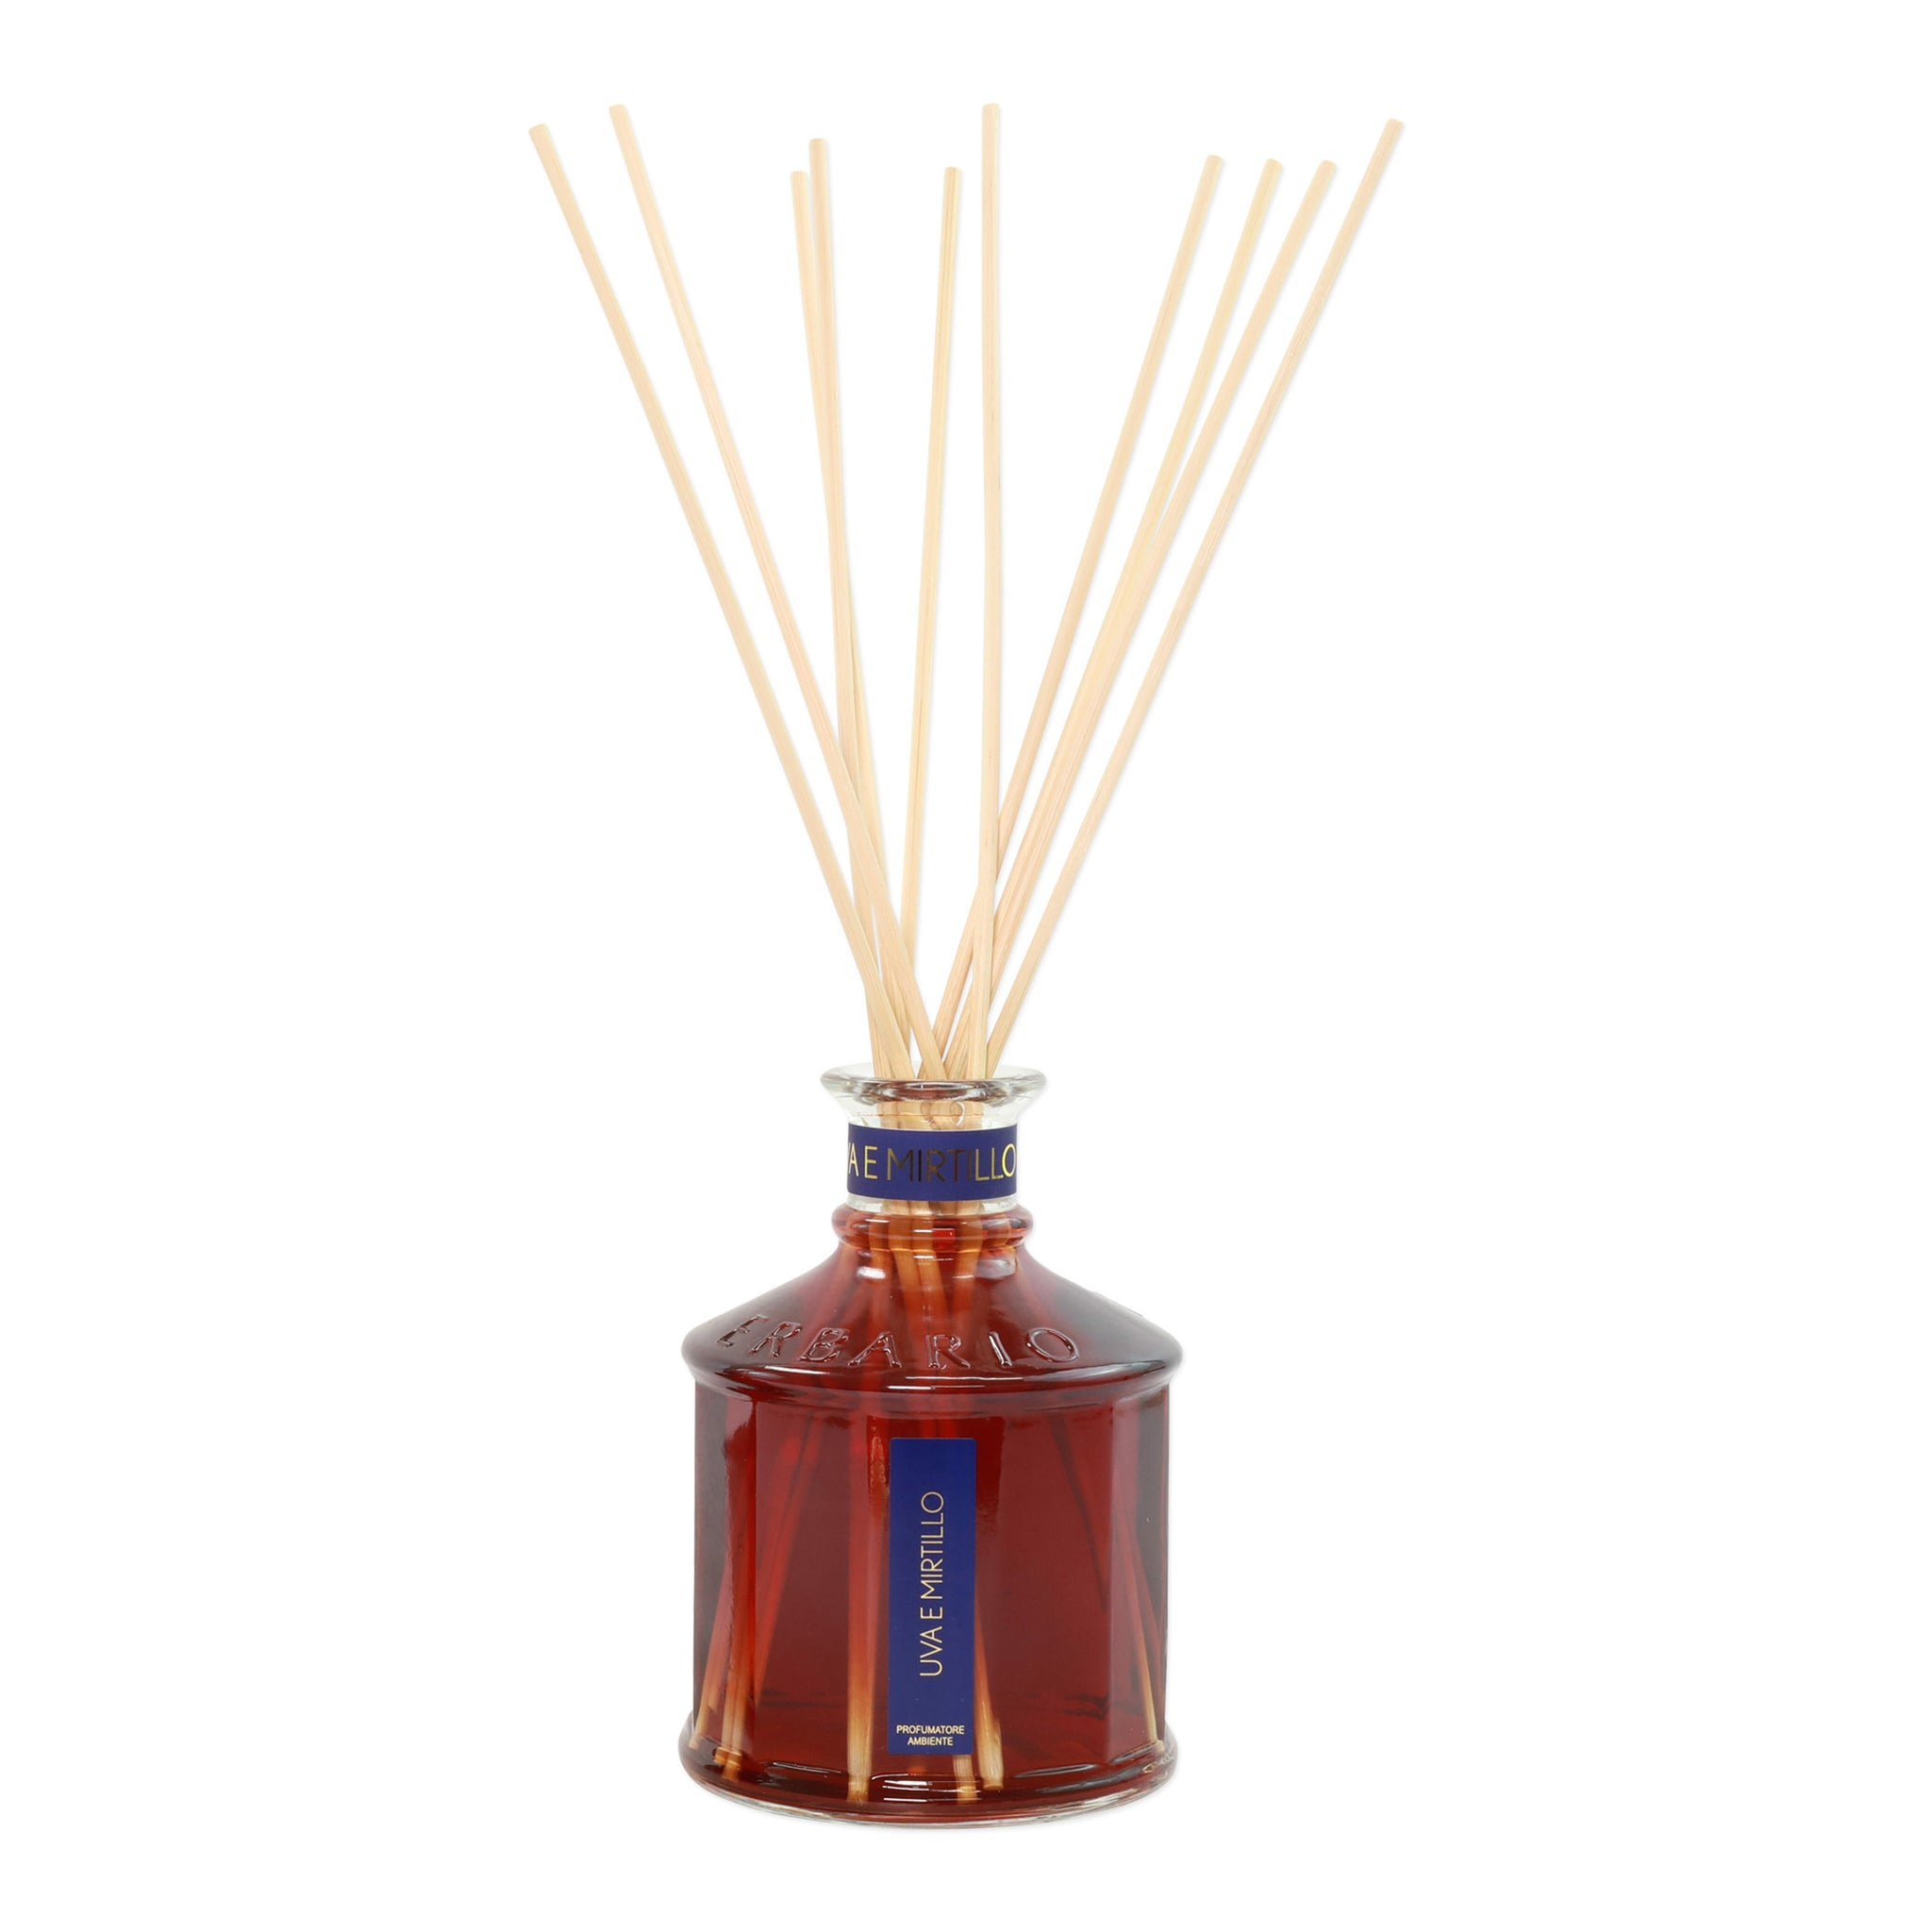 Grape & Bilberry Diffuser - Erbario Toscana - Available in 3 Sizes